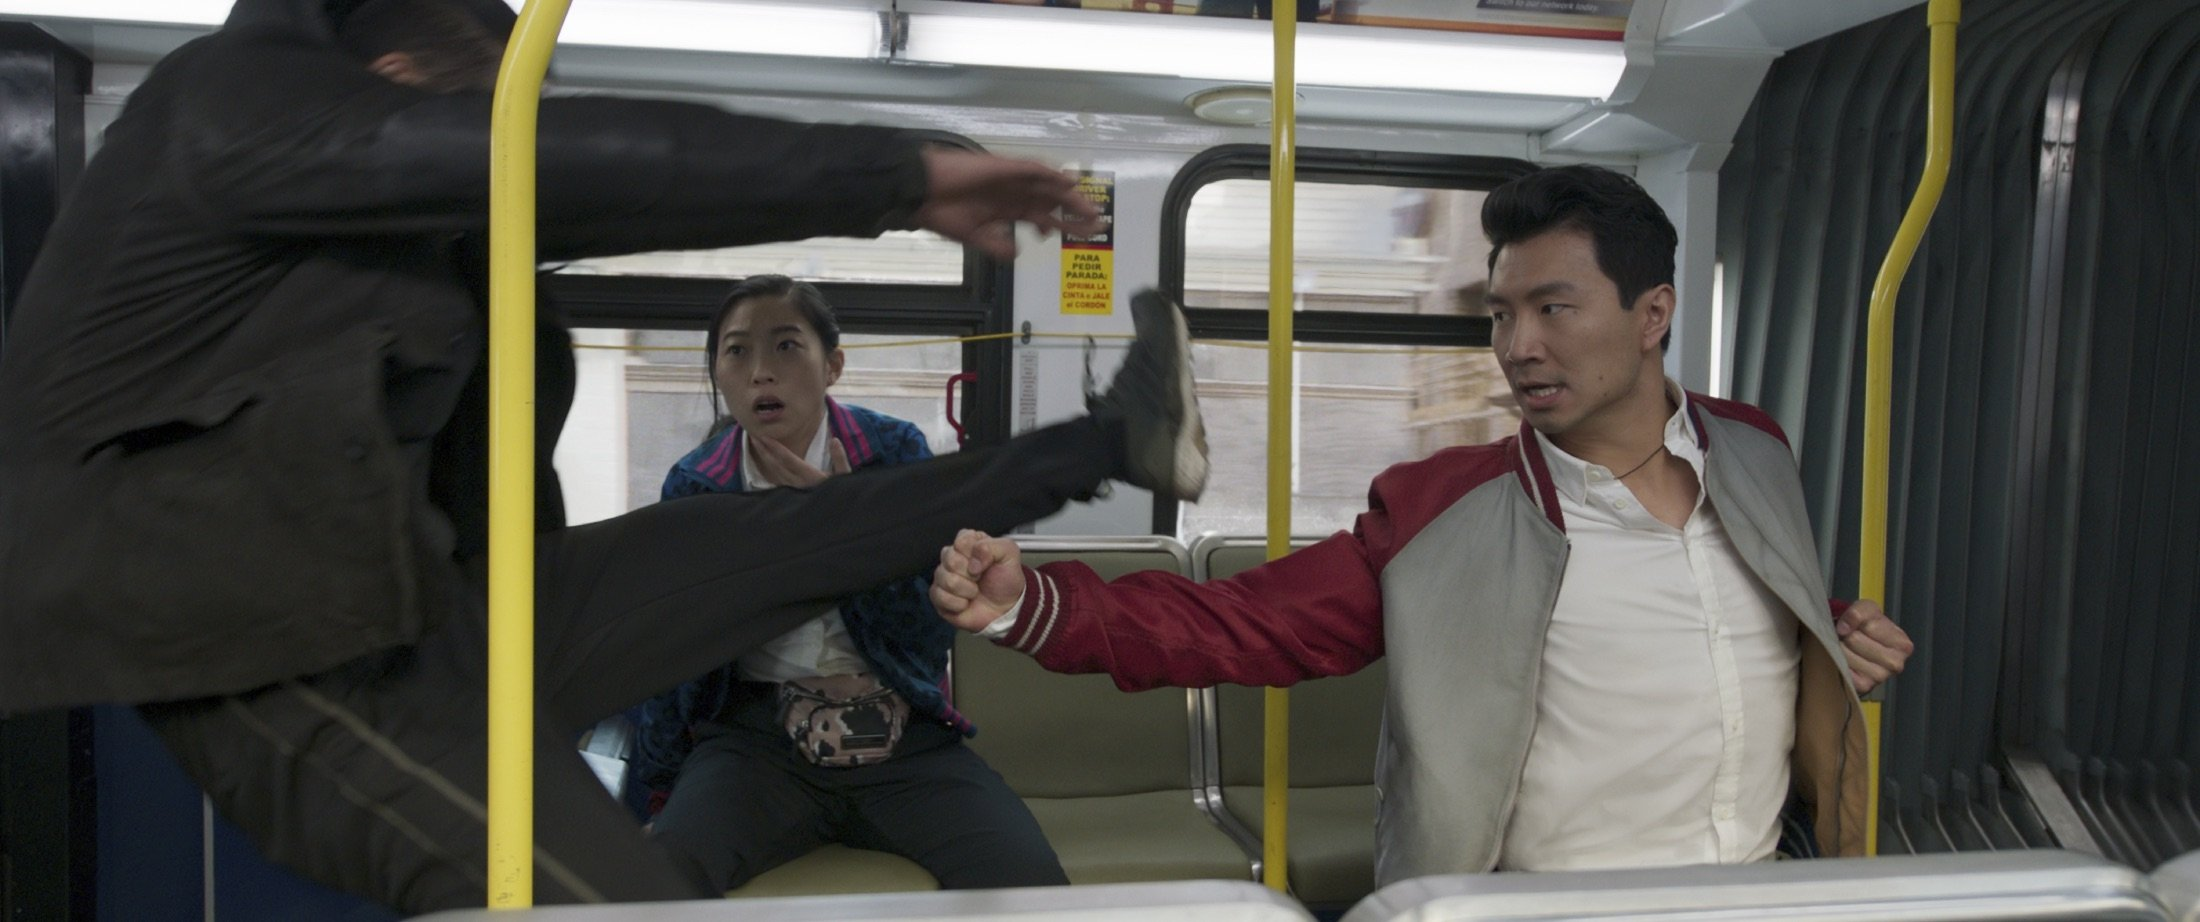 """Awkwafina (C) andSimu Liu (R), in a scene from the film """"Shang-Chi and the Legend of the Ten Rings."""" (Marvel Studios via AP)"""